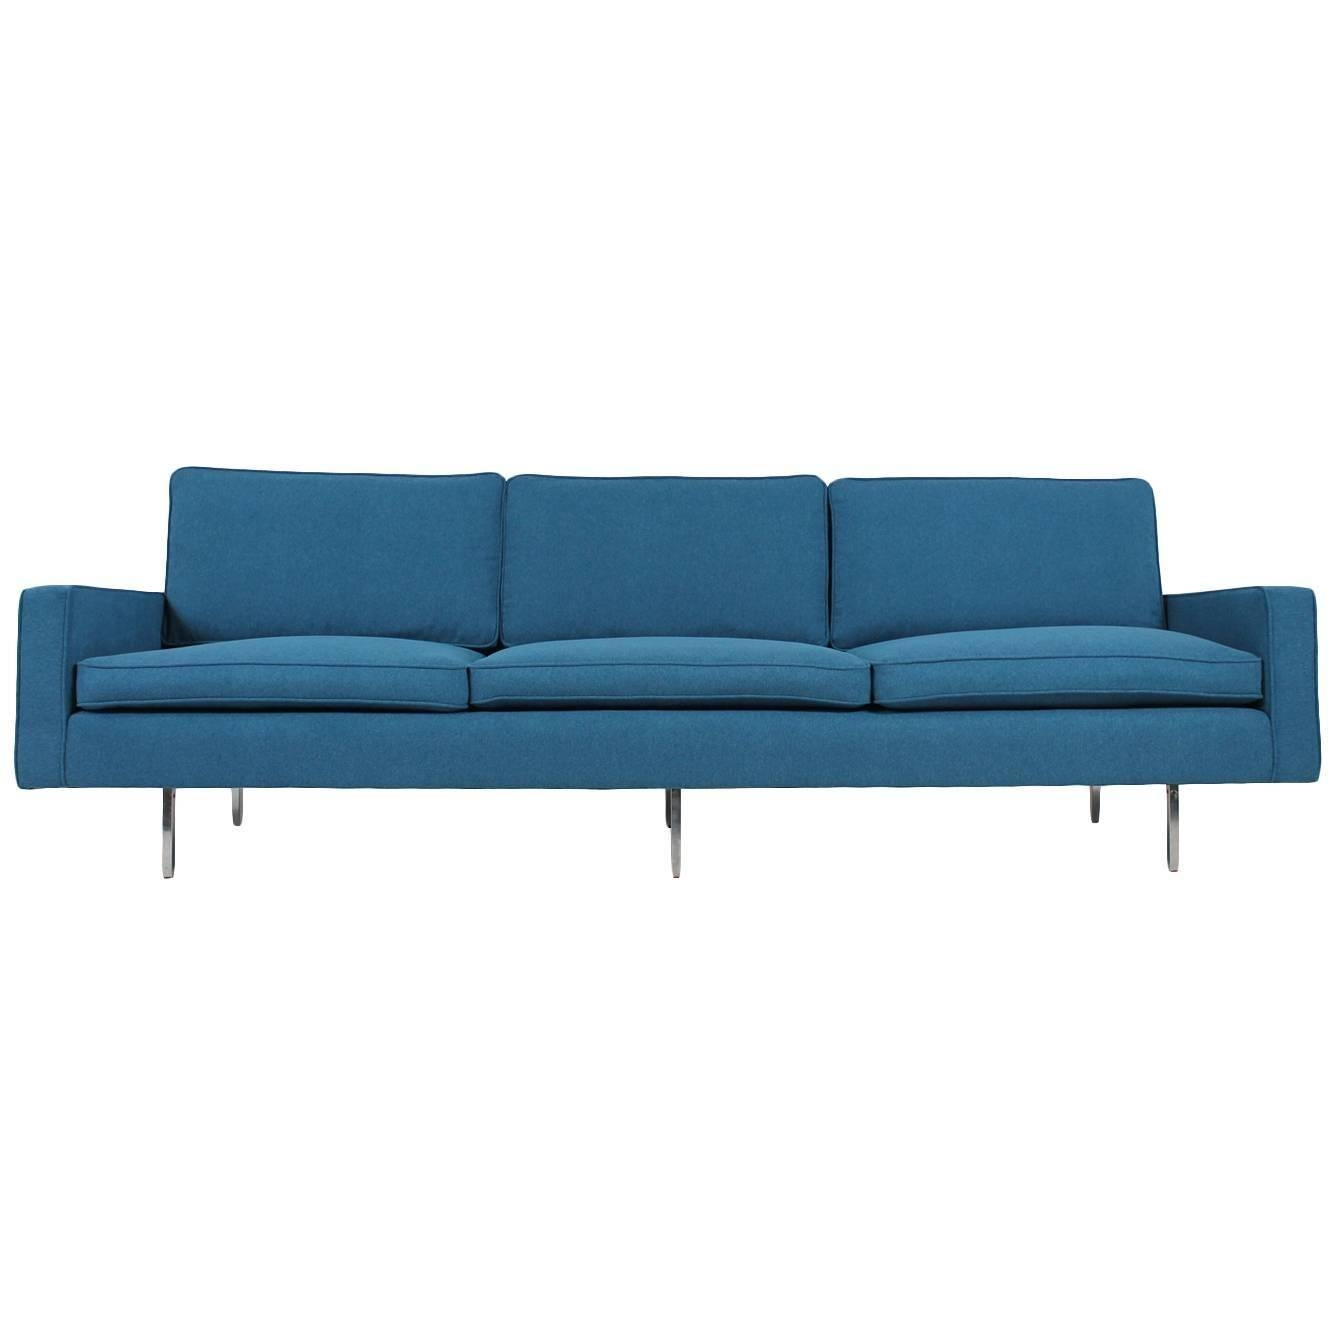 Beautiful Mid-Century Florence Knoll Sofa Mod. 25 Bc Knoll intended for Florence Knoll Wood Legs Sofas (Image 1 of 25)